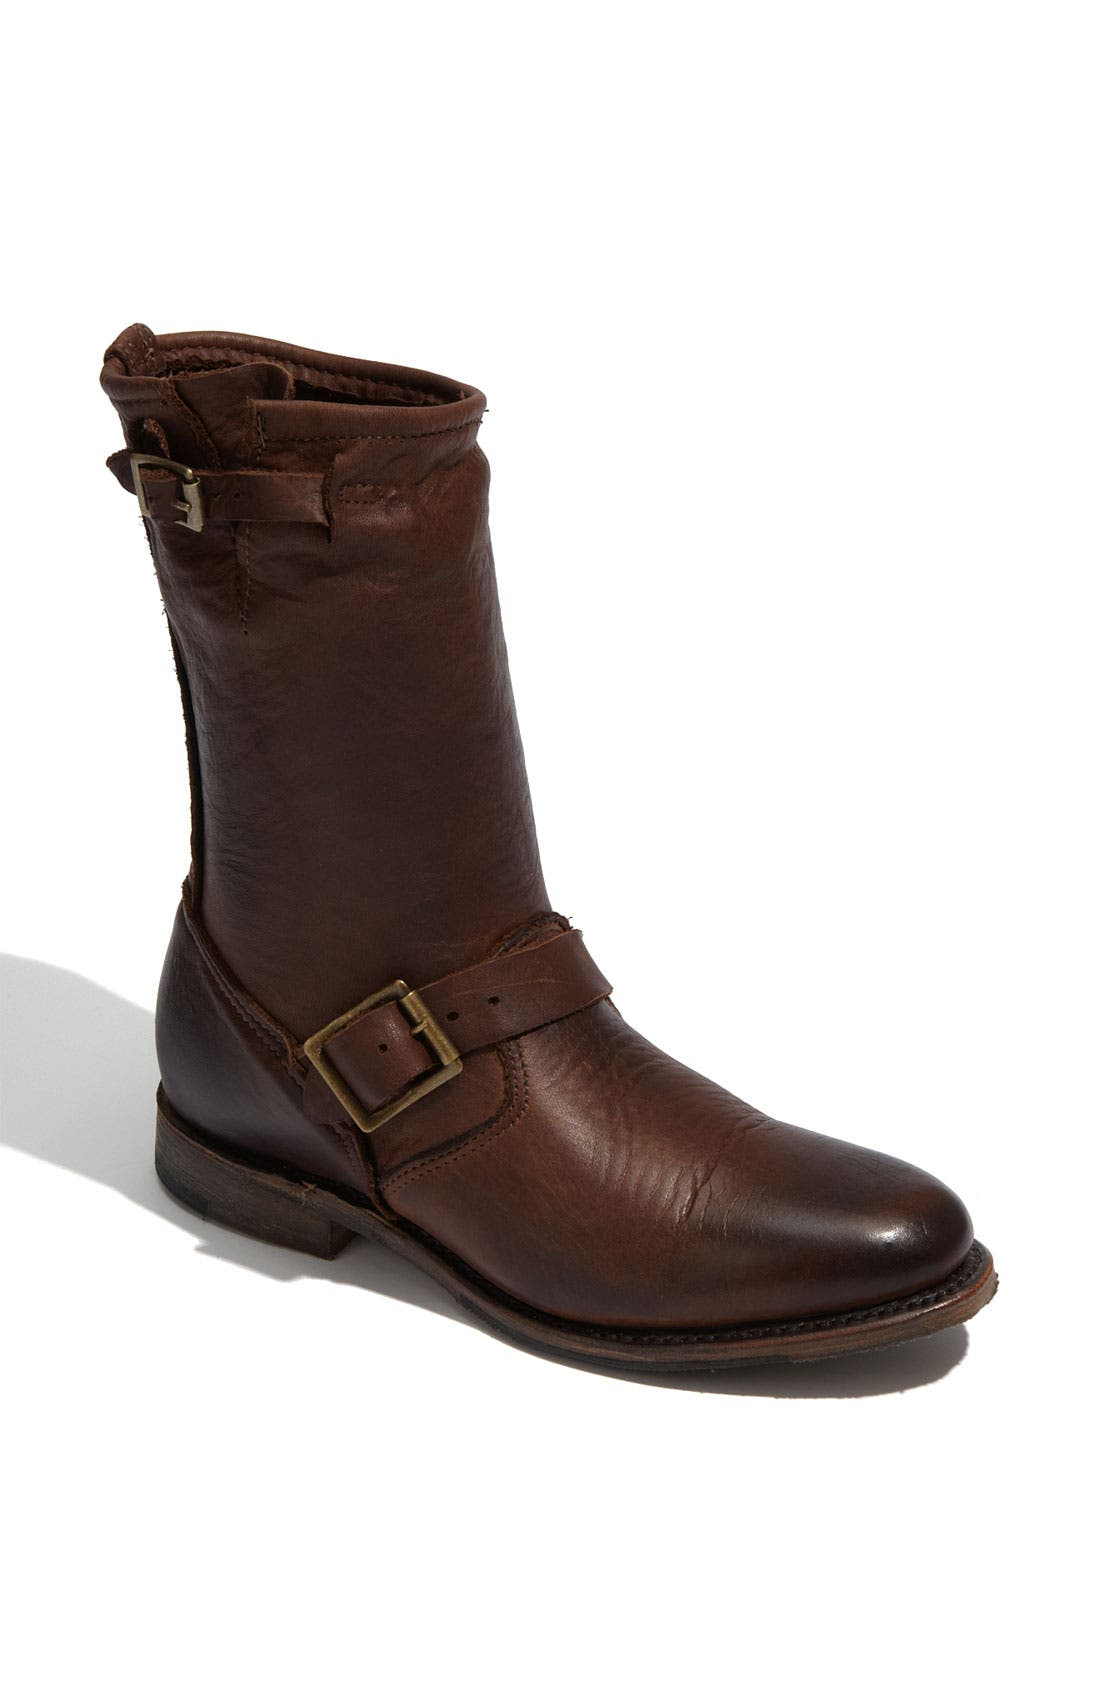 Main Image - Vintage Shoe Company 'Veronica' Boot